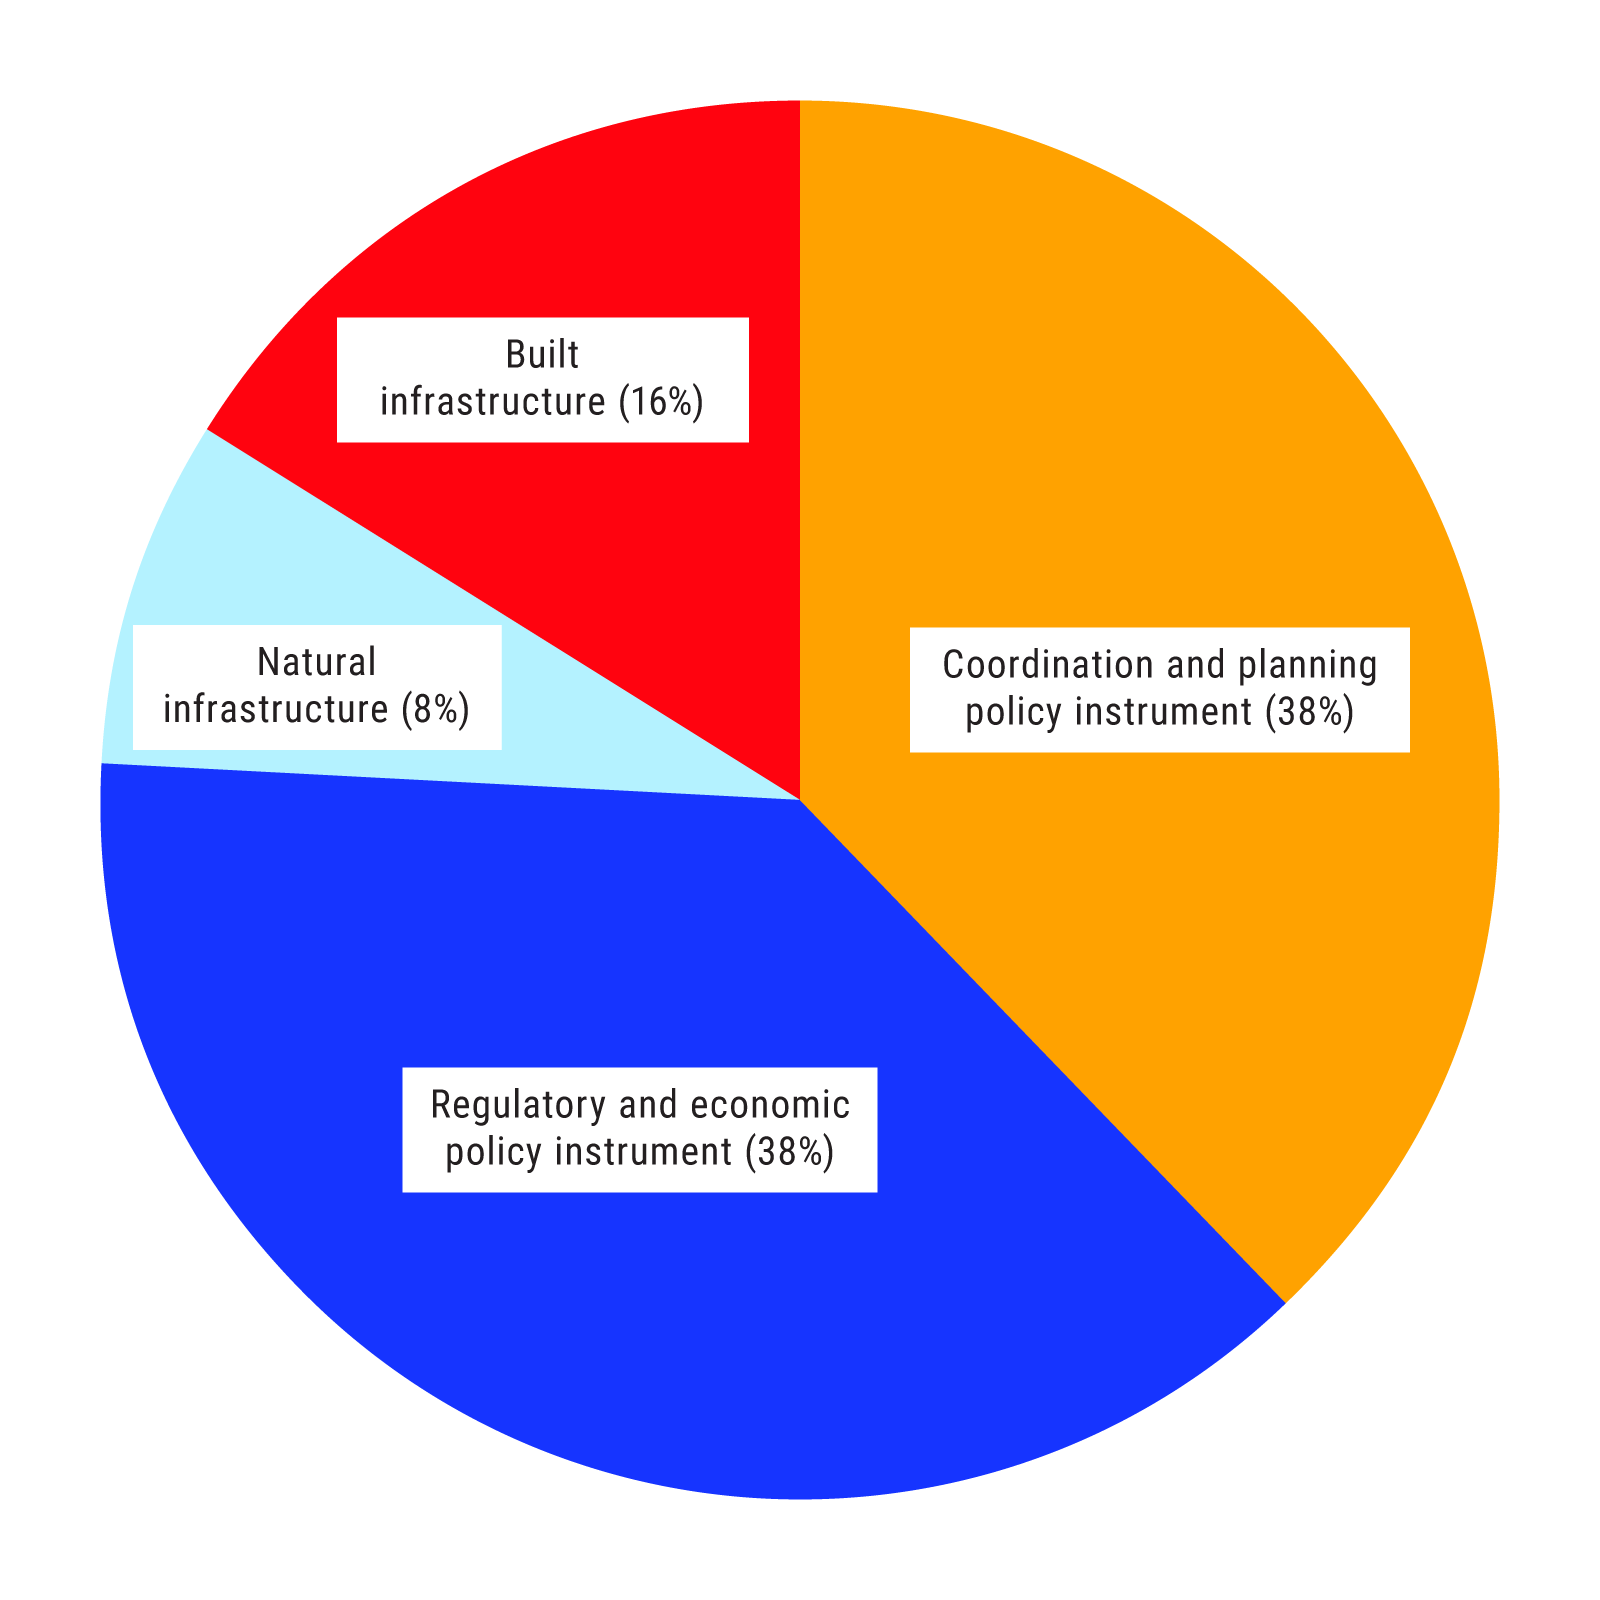 Pie chart indicates that 38% of the dialogue focused on coordination and planning instruments, 38% on regulatory and economic policy instruments, 16% on built infrastructure and 8% on natural infrastructure.